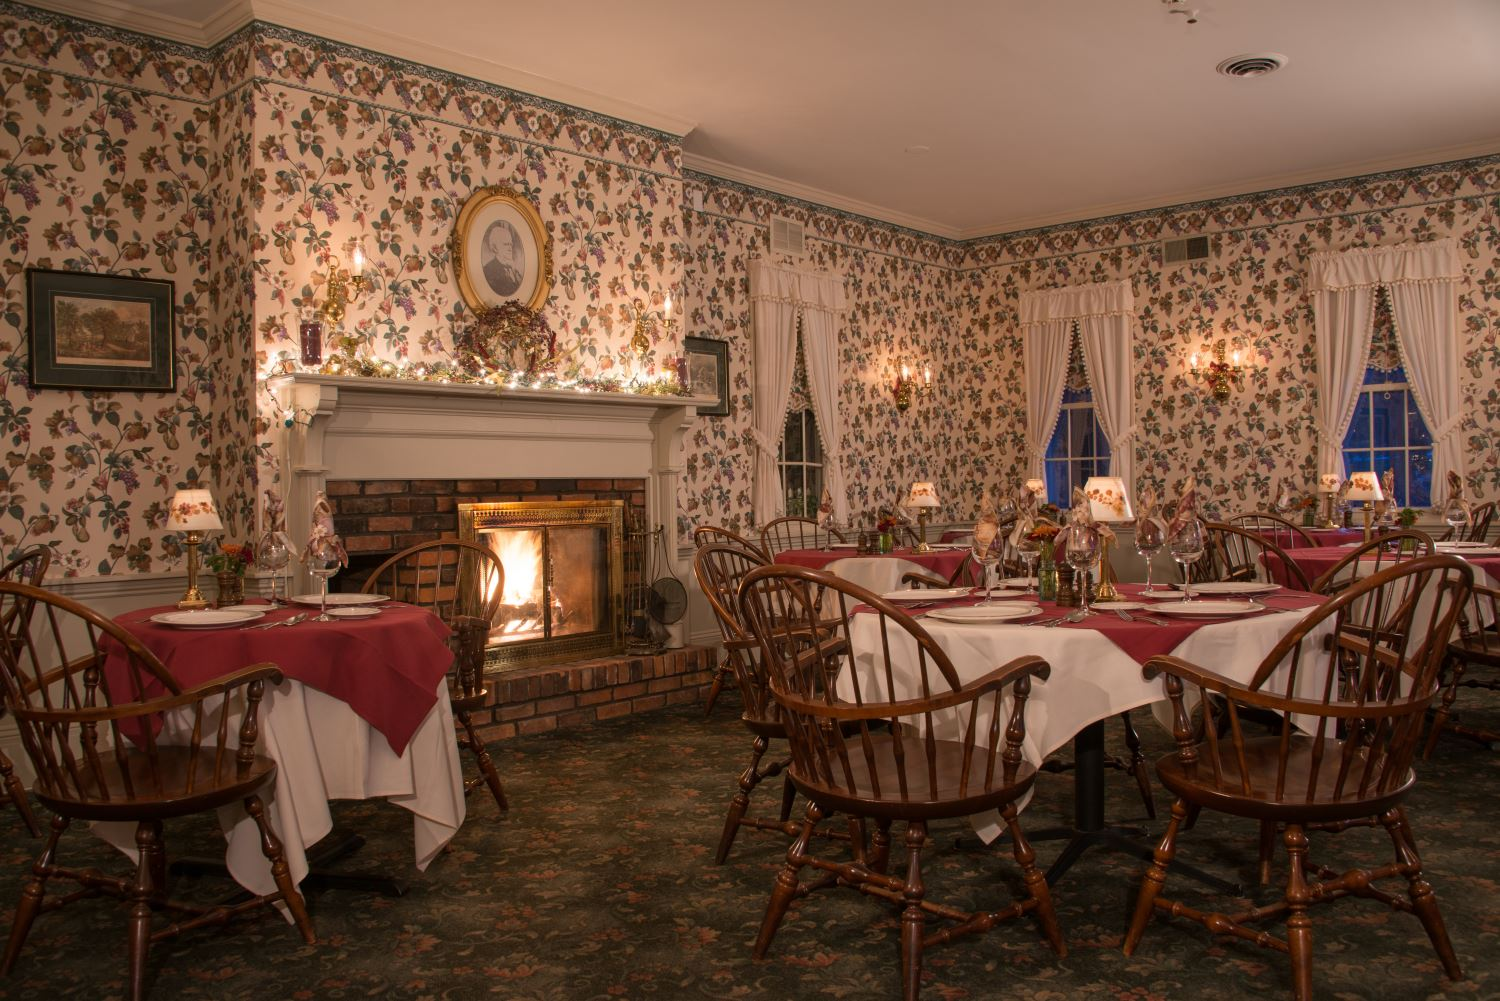 View By Fireplace In The Dining Room At Asa Ransom House